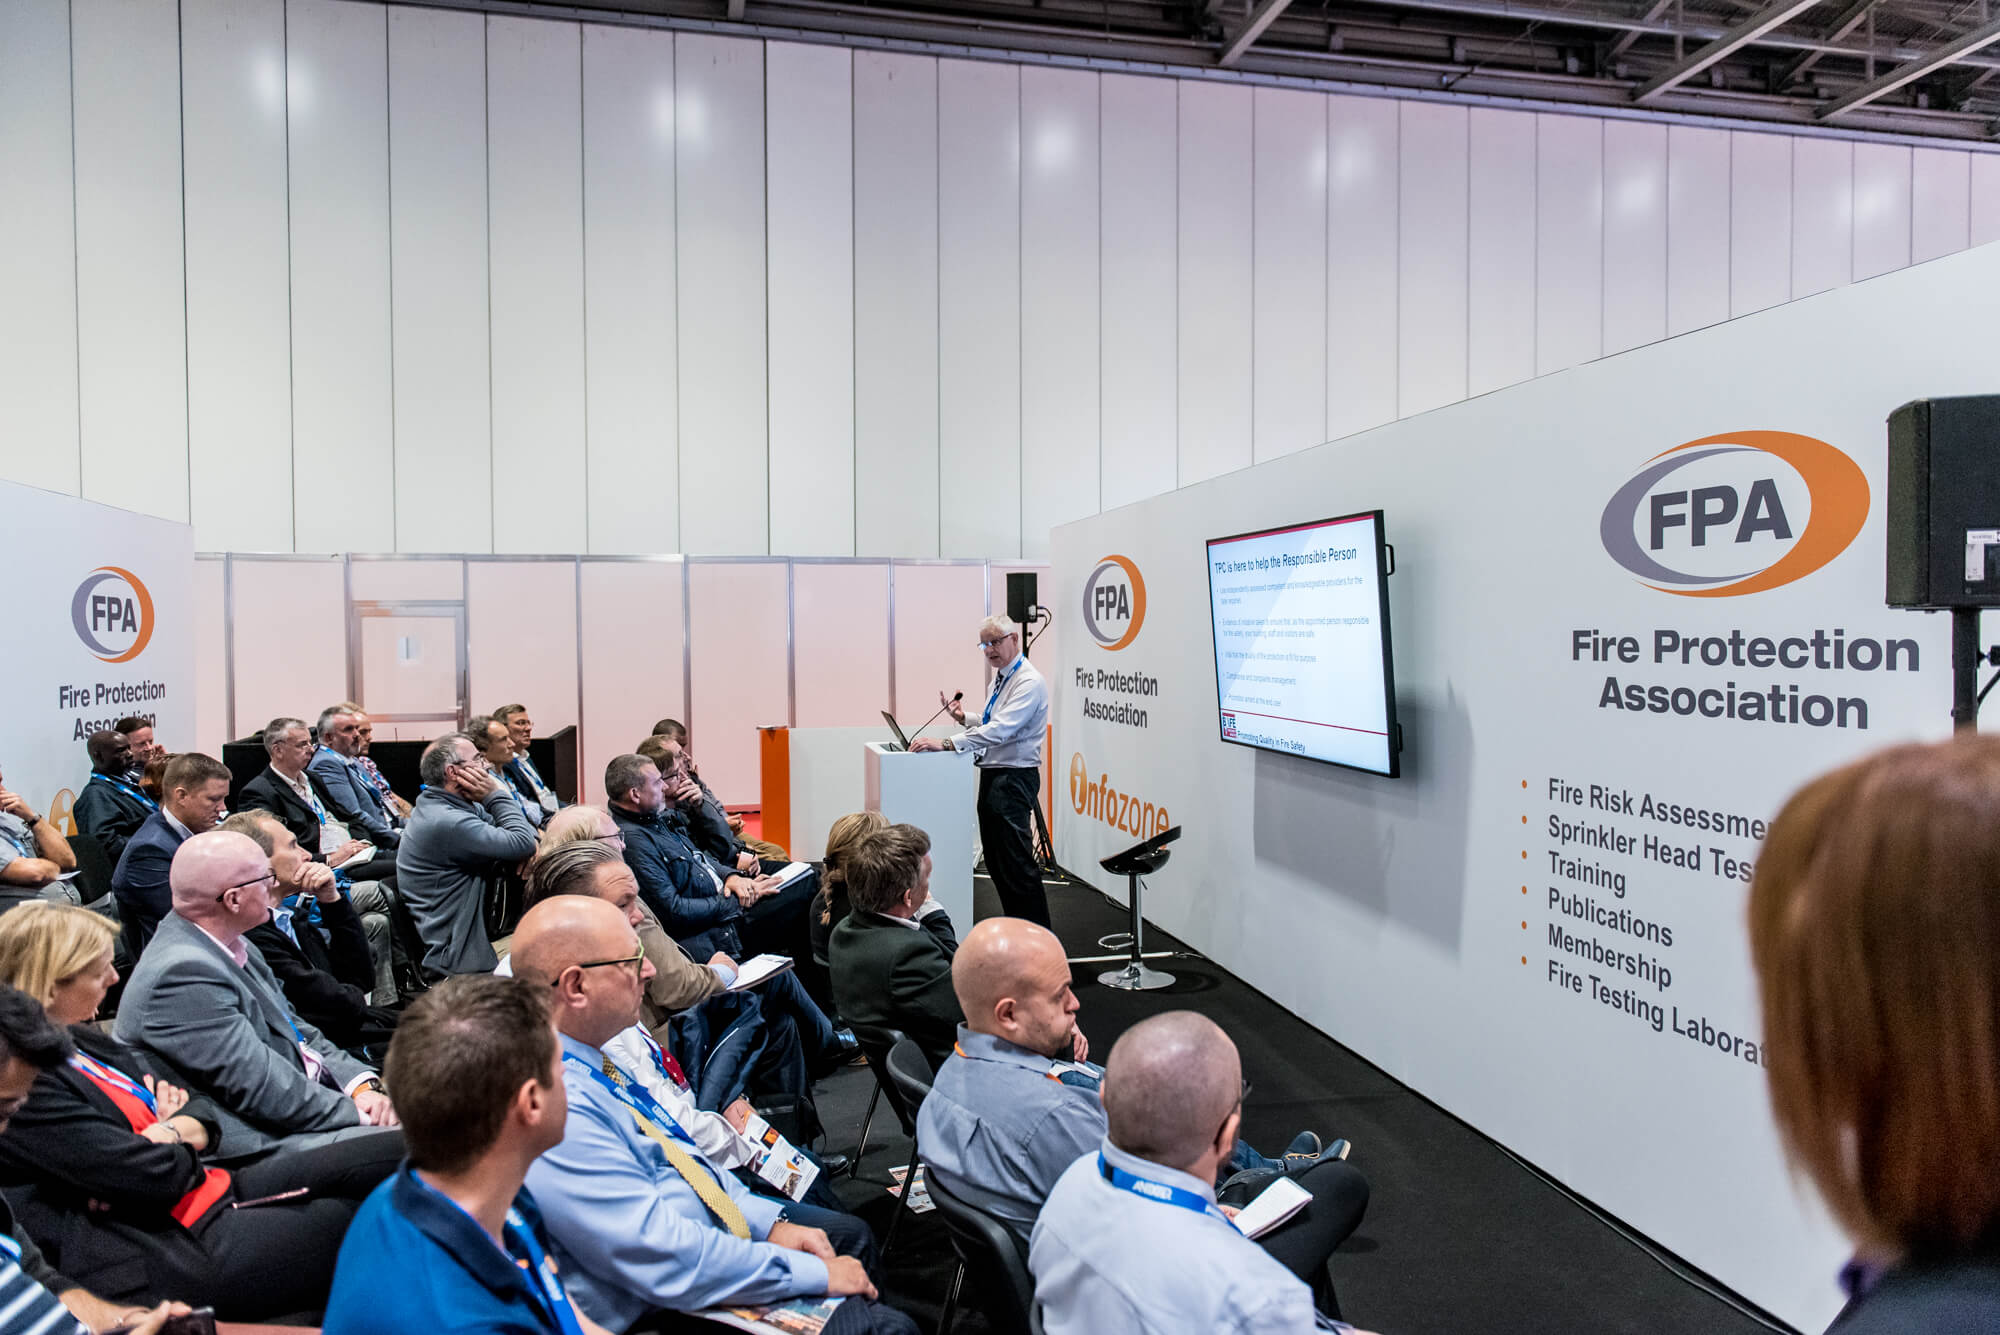 A busy seminar at the FPA stand at FIREX 2019